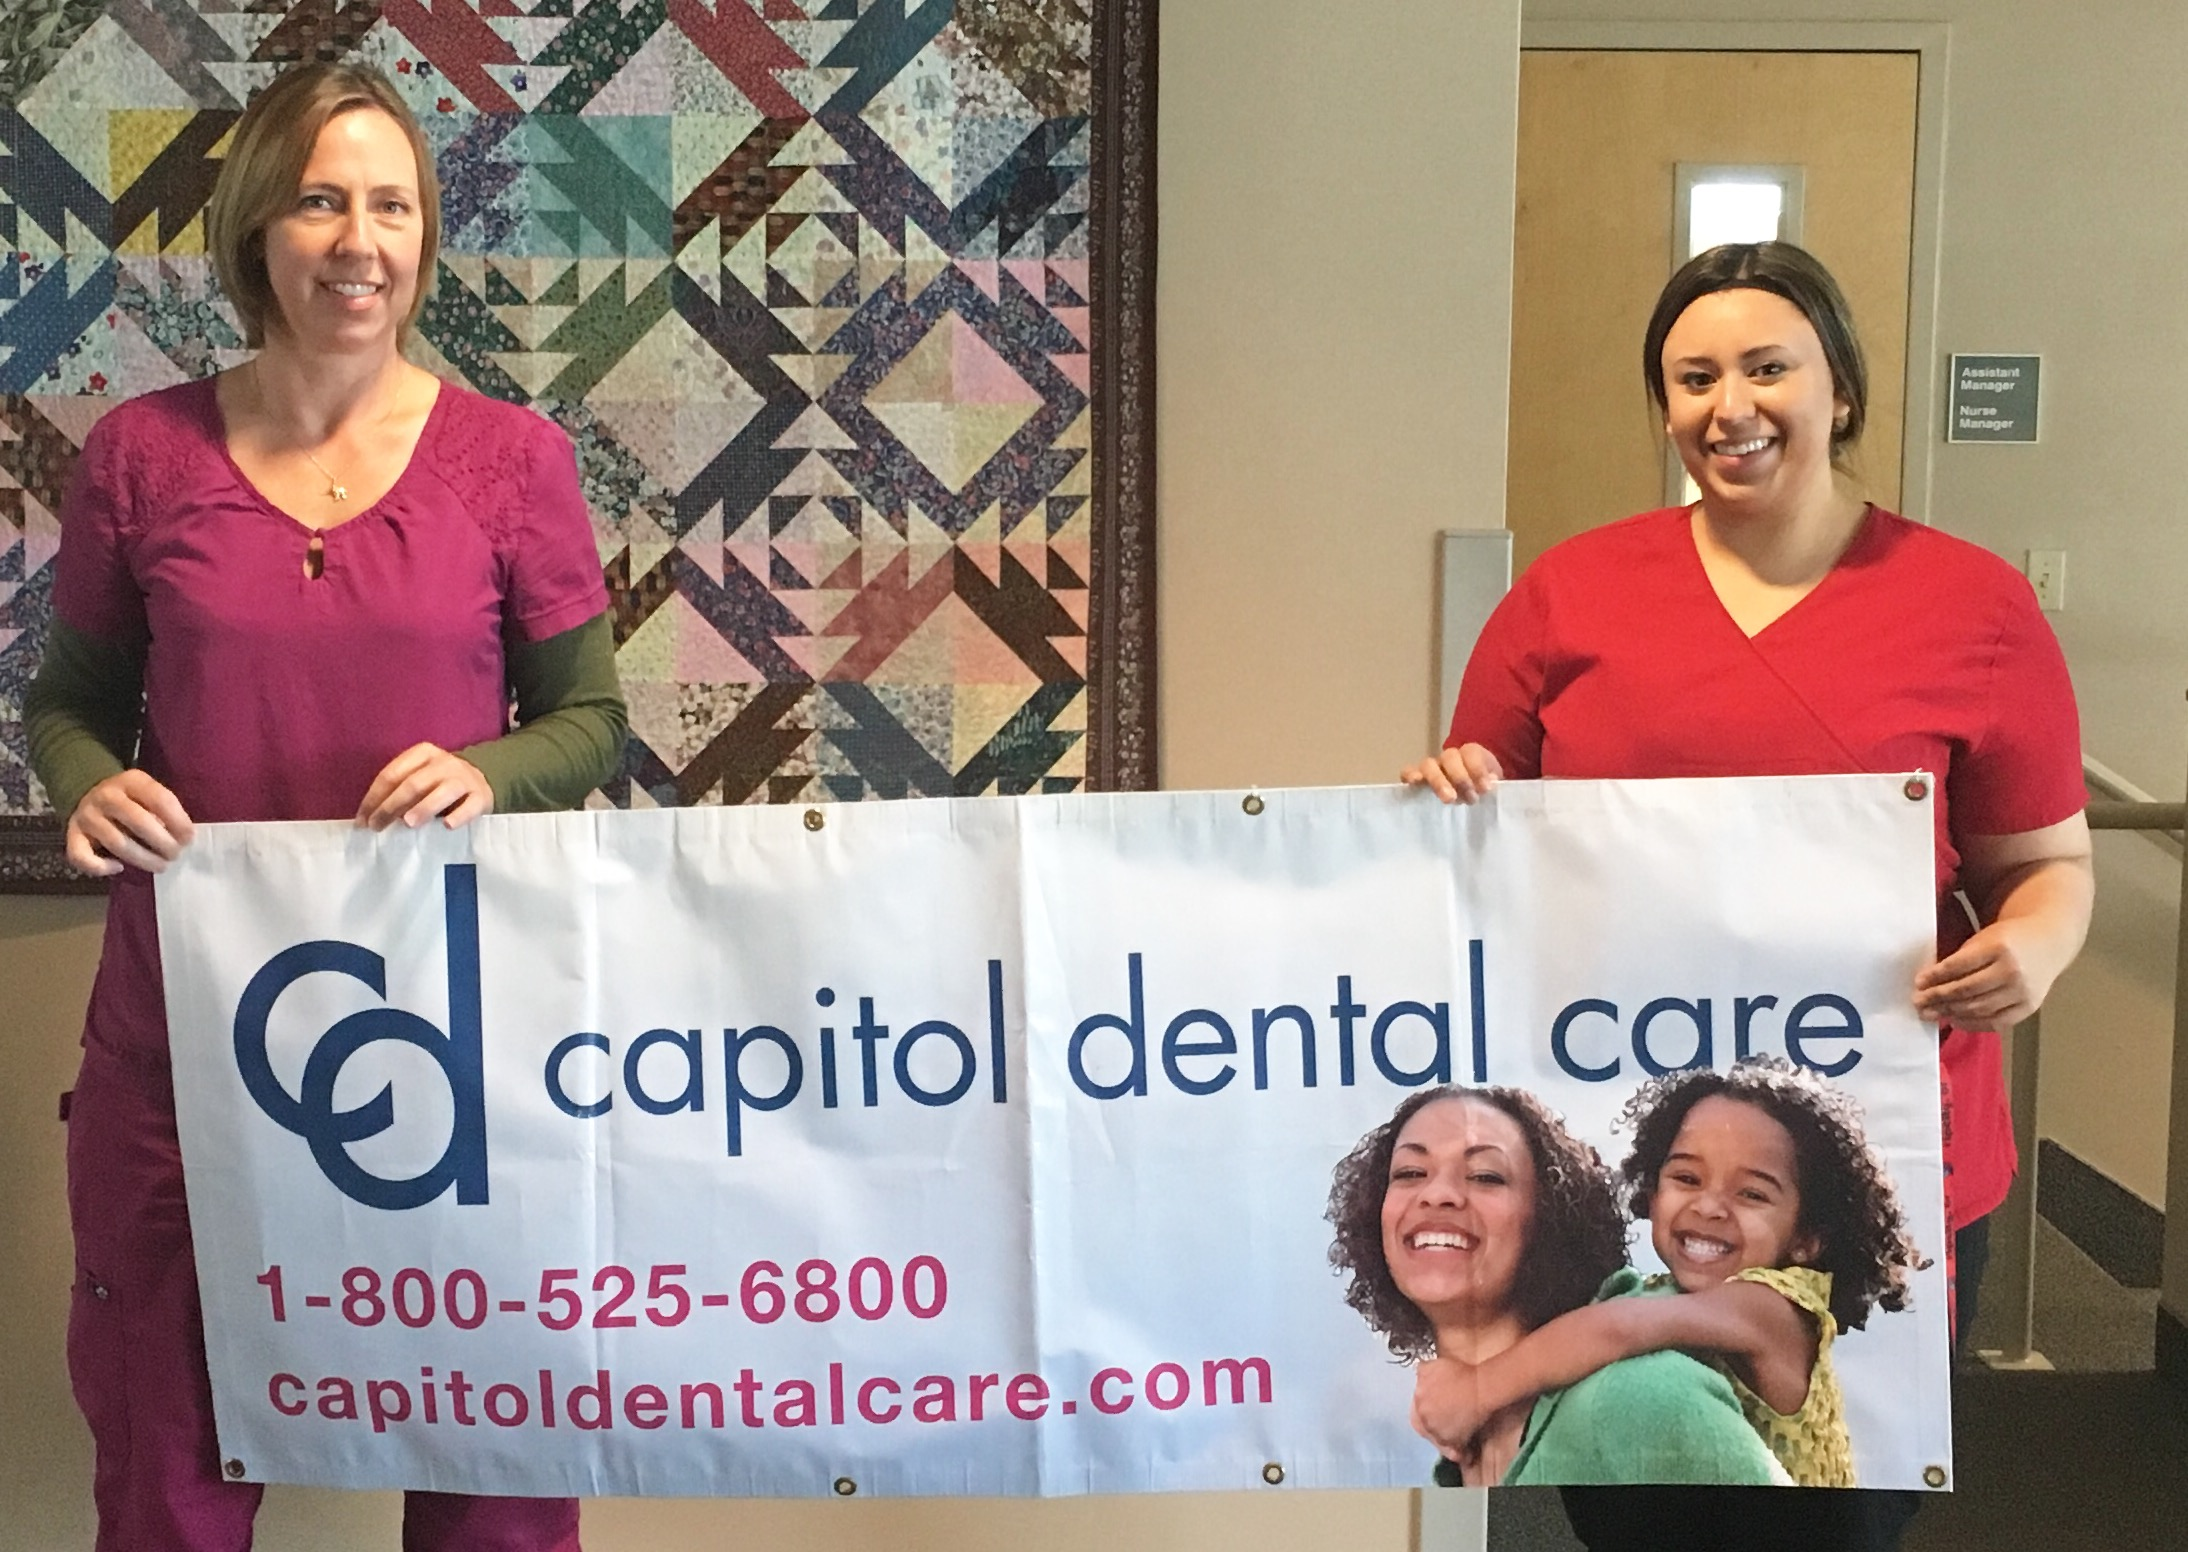 Dawn lowe (left) and vanessa maciel (right) are both expanded practice dental hygienists for capitol dental and serve their communities through co-location programs.